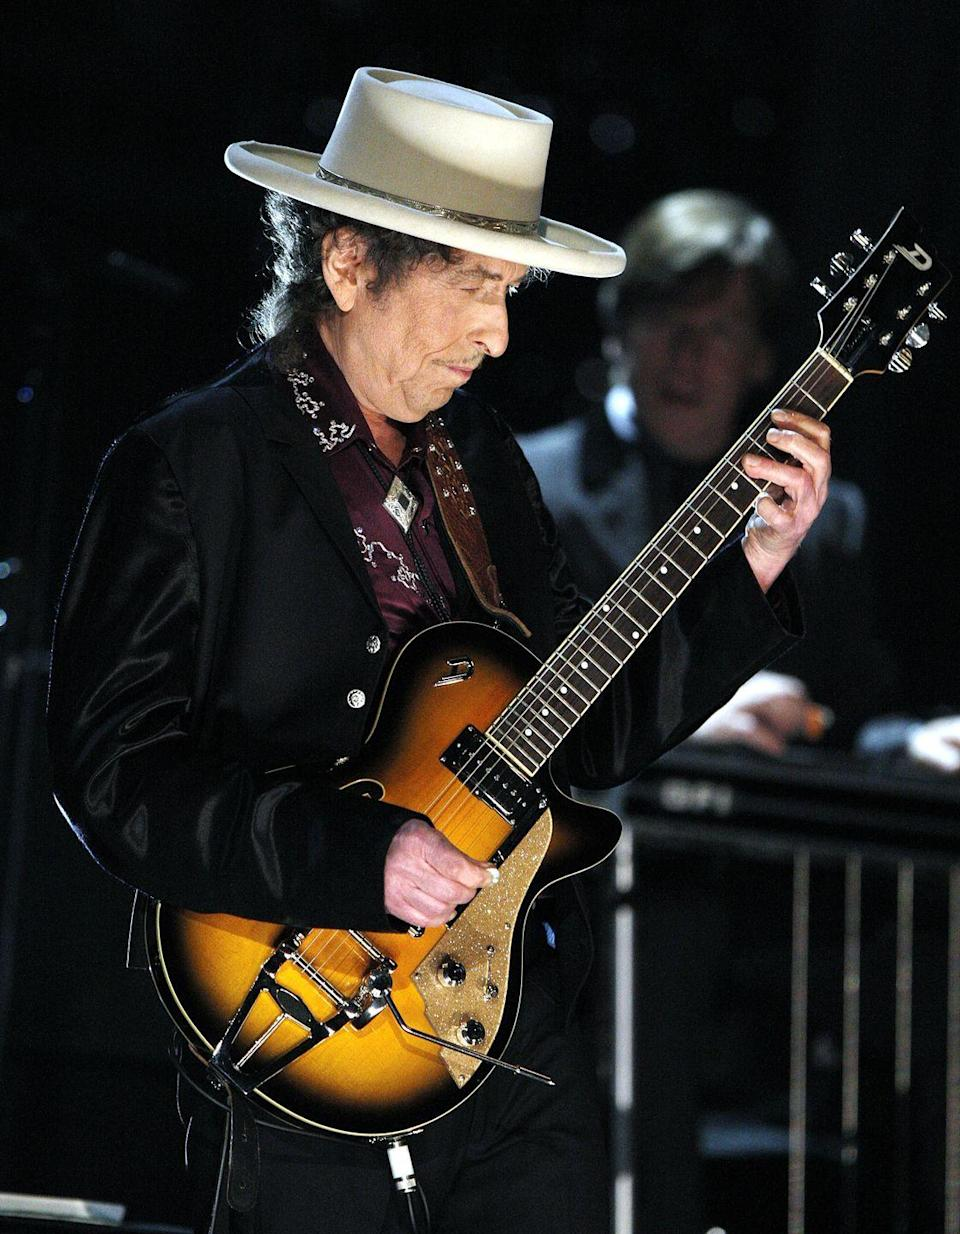 """<p>Bob Dylan seems like a strange fit for a Christmas album, but his <em><a href=""""https://www.amazon.com/Christmas-Heart-Bob-Dylan/dp/B002MW50KO?tag=syn-yahoo-20&ascsubtag=%5Bartid%7C10055.g.2680%5Bsrc%7Cyahoo-us"""" rel=""""nofollow noopener"""" target=""""_blank"""" data-ylk=""""slk:Christmas in the Heart"""" class=""""link rapid-noclick-resp"""">Christmas in the Heart</a> </em>features this jaunty, accordion-filled tune that no one can resist. </p><p><a class=""""link rapid-noclick-resp"""" href=""""https://www.amazon.com/Must-Be-Santa/dp/B002R4M3MU?tag=syn-yahoo-20&ascsubtag=%5Bartid%7C10055.g.2680%5Bsrc%7Cyahoo-us"""" rel=""""nofollow noopener"""" target=""""_blank"""" data-ylk=""""slk:AMAZON"""">AMAZON</a> <a class=""""link rapid-noclick-resp"""" href=""""https://go.redirectingat.com?id=74968X1596630&url=https%3A%2F%2Fmusic.apple.com%2Fus%2Falbum%2Fchristmas-in-the-heart%2F331549170&sref=https%3A%2F%2Fwww.goodhousekeeping.com%2Fholidays%2Fchristmas-ideas%2Fg2680%2Fchristmas-songs%2F"""" rel=""""nofollow noopener"""" target=""""_blank"""" data-ylk=""""slk:ITUNES"""">ITUNES</a></p>"""